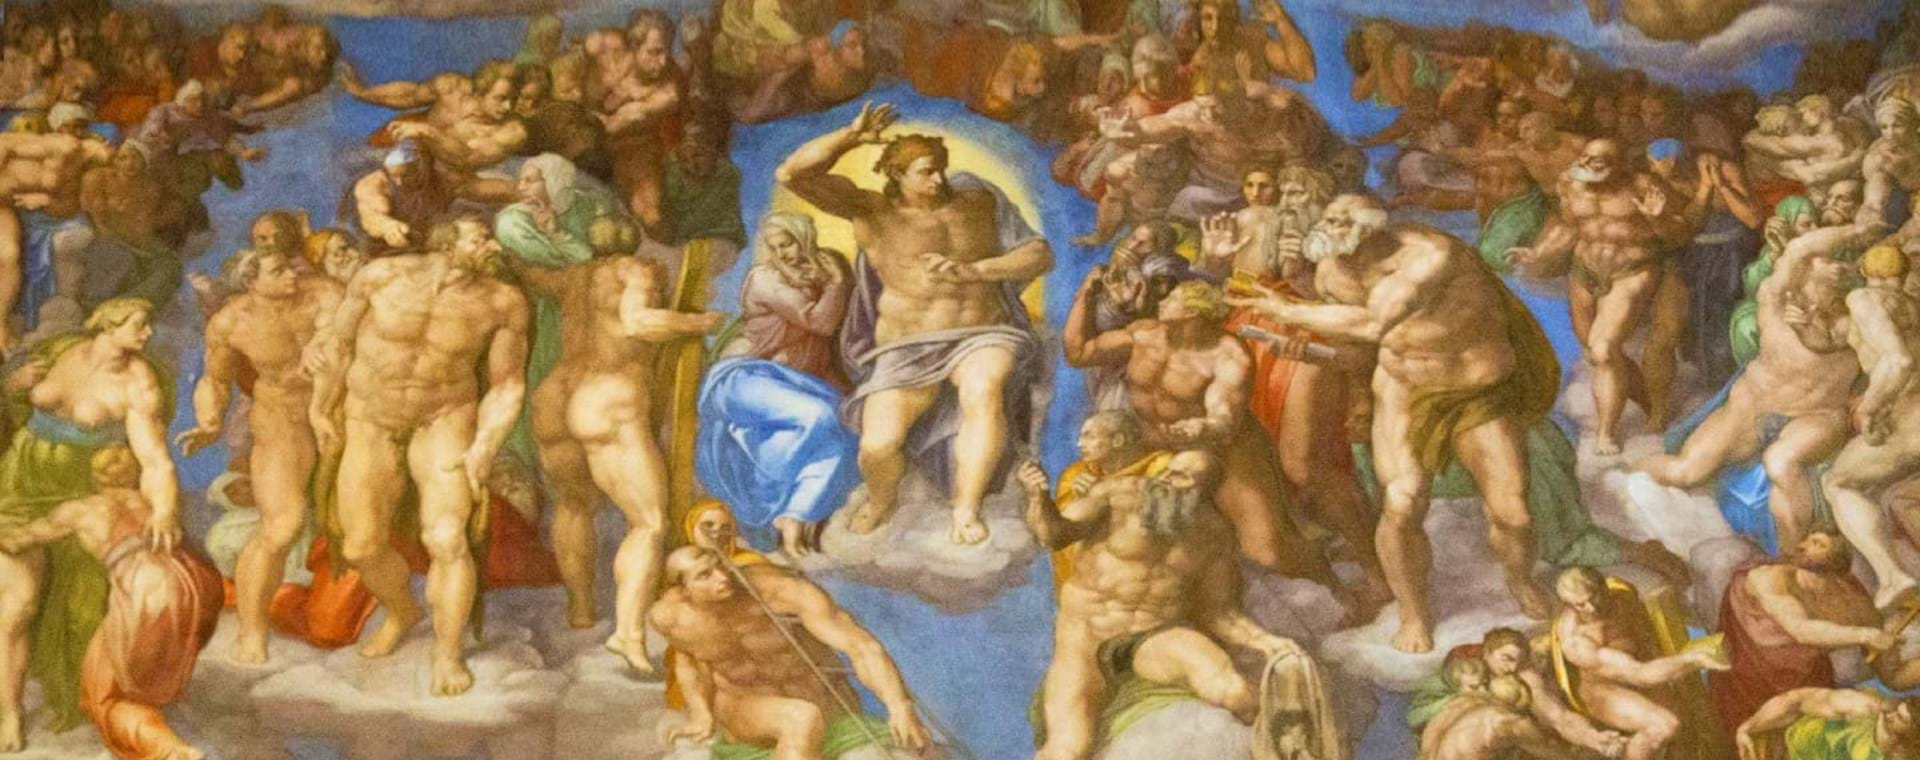 Complete Sistine Chapel & Vatican Museums Tour with Bramante Staircase & St. Peter's Basilica